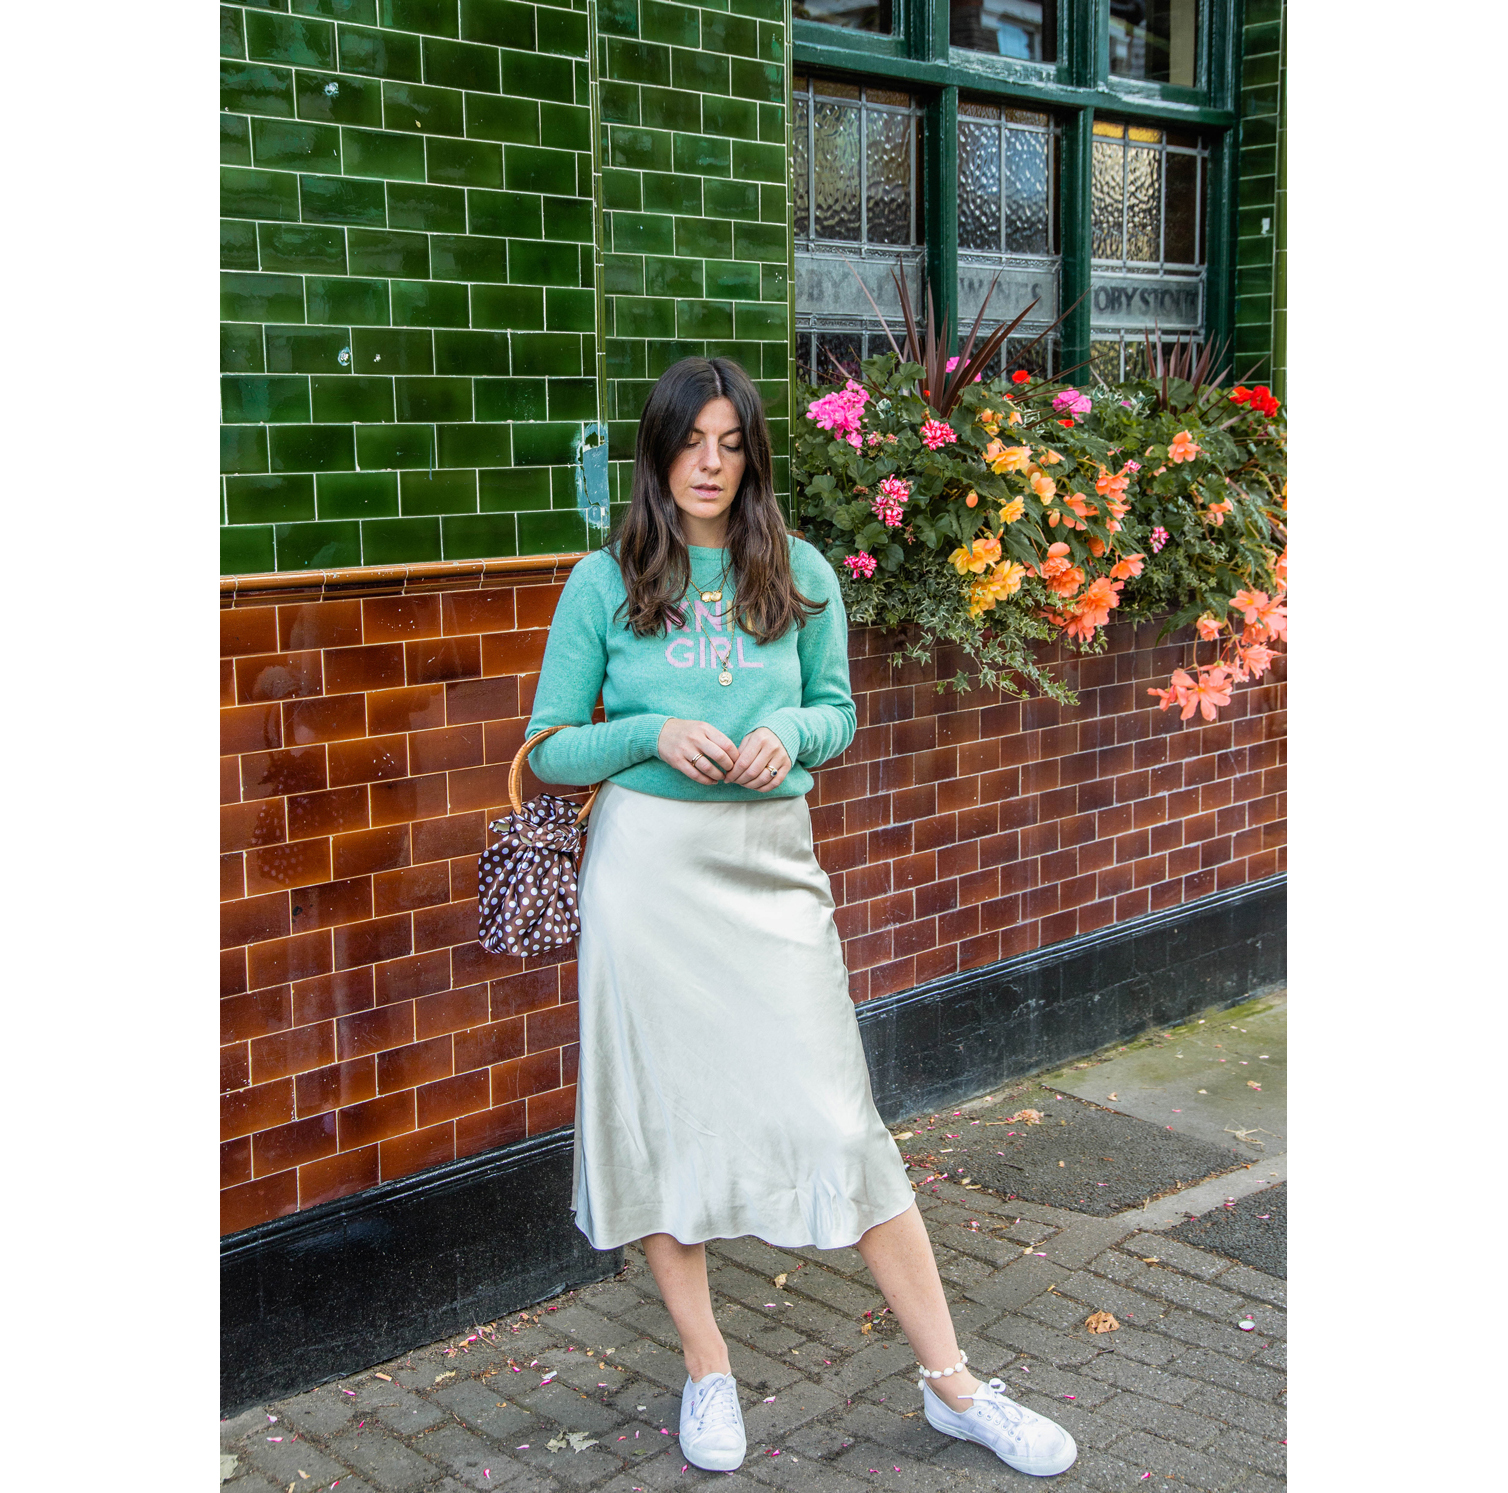 The mix of textures - silky satin and fluffy lambswool is just dreamy! Fran styles this skirt down with some comfy trainers.